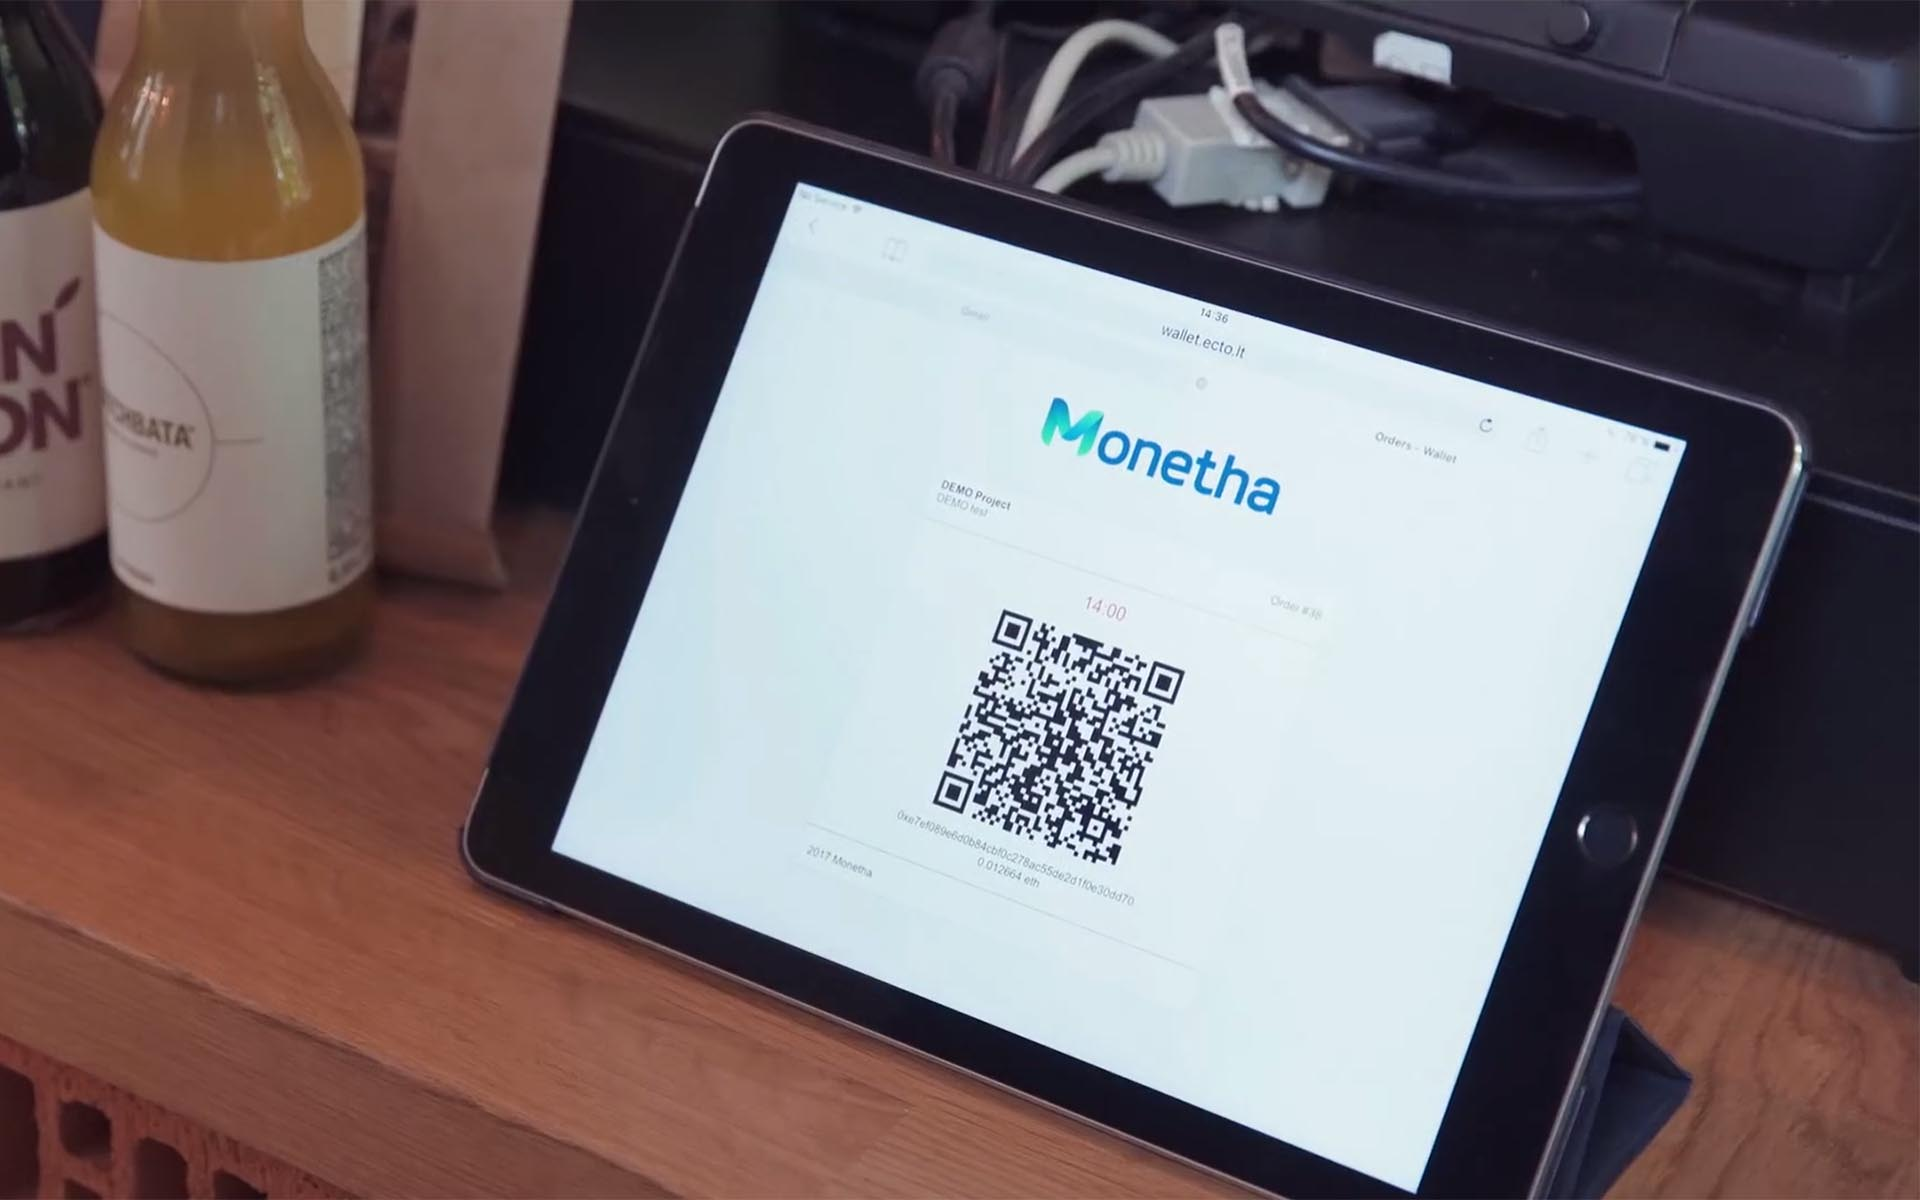 Former PayPal Exec and Leading Online Reputation Expert Join Monetha As ICO Date Approaches